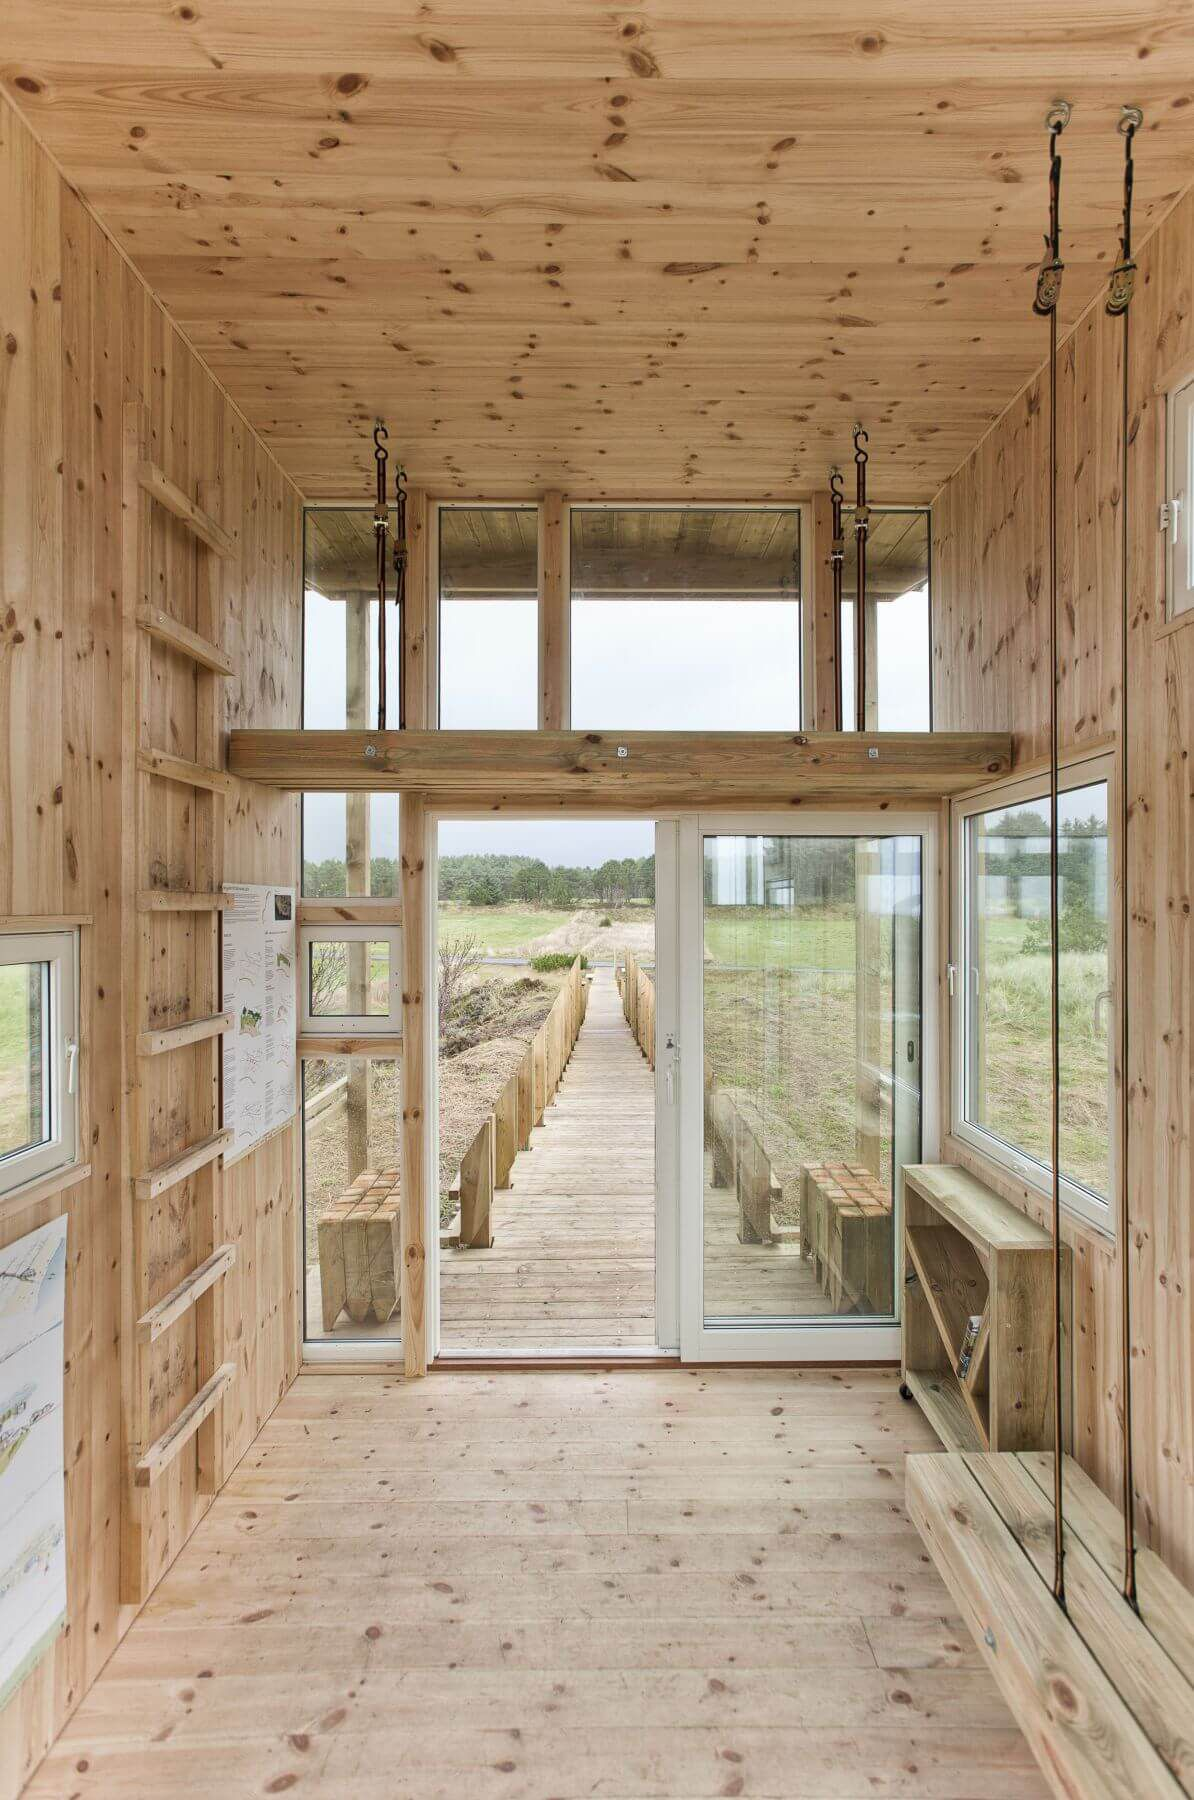 wooden landscape viewpoint Norway wooden interior